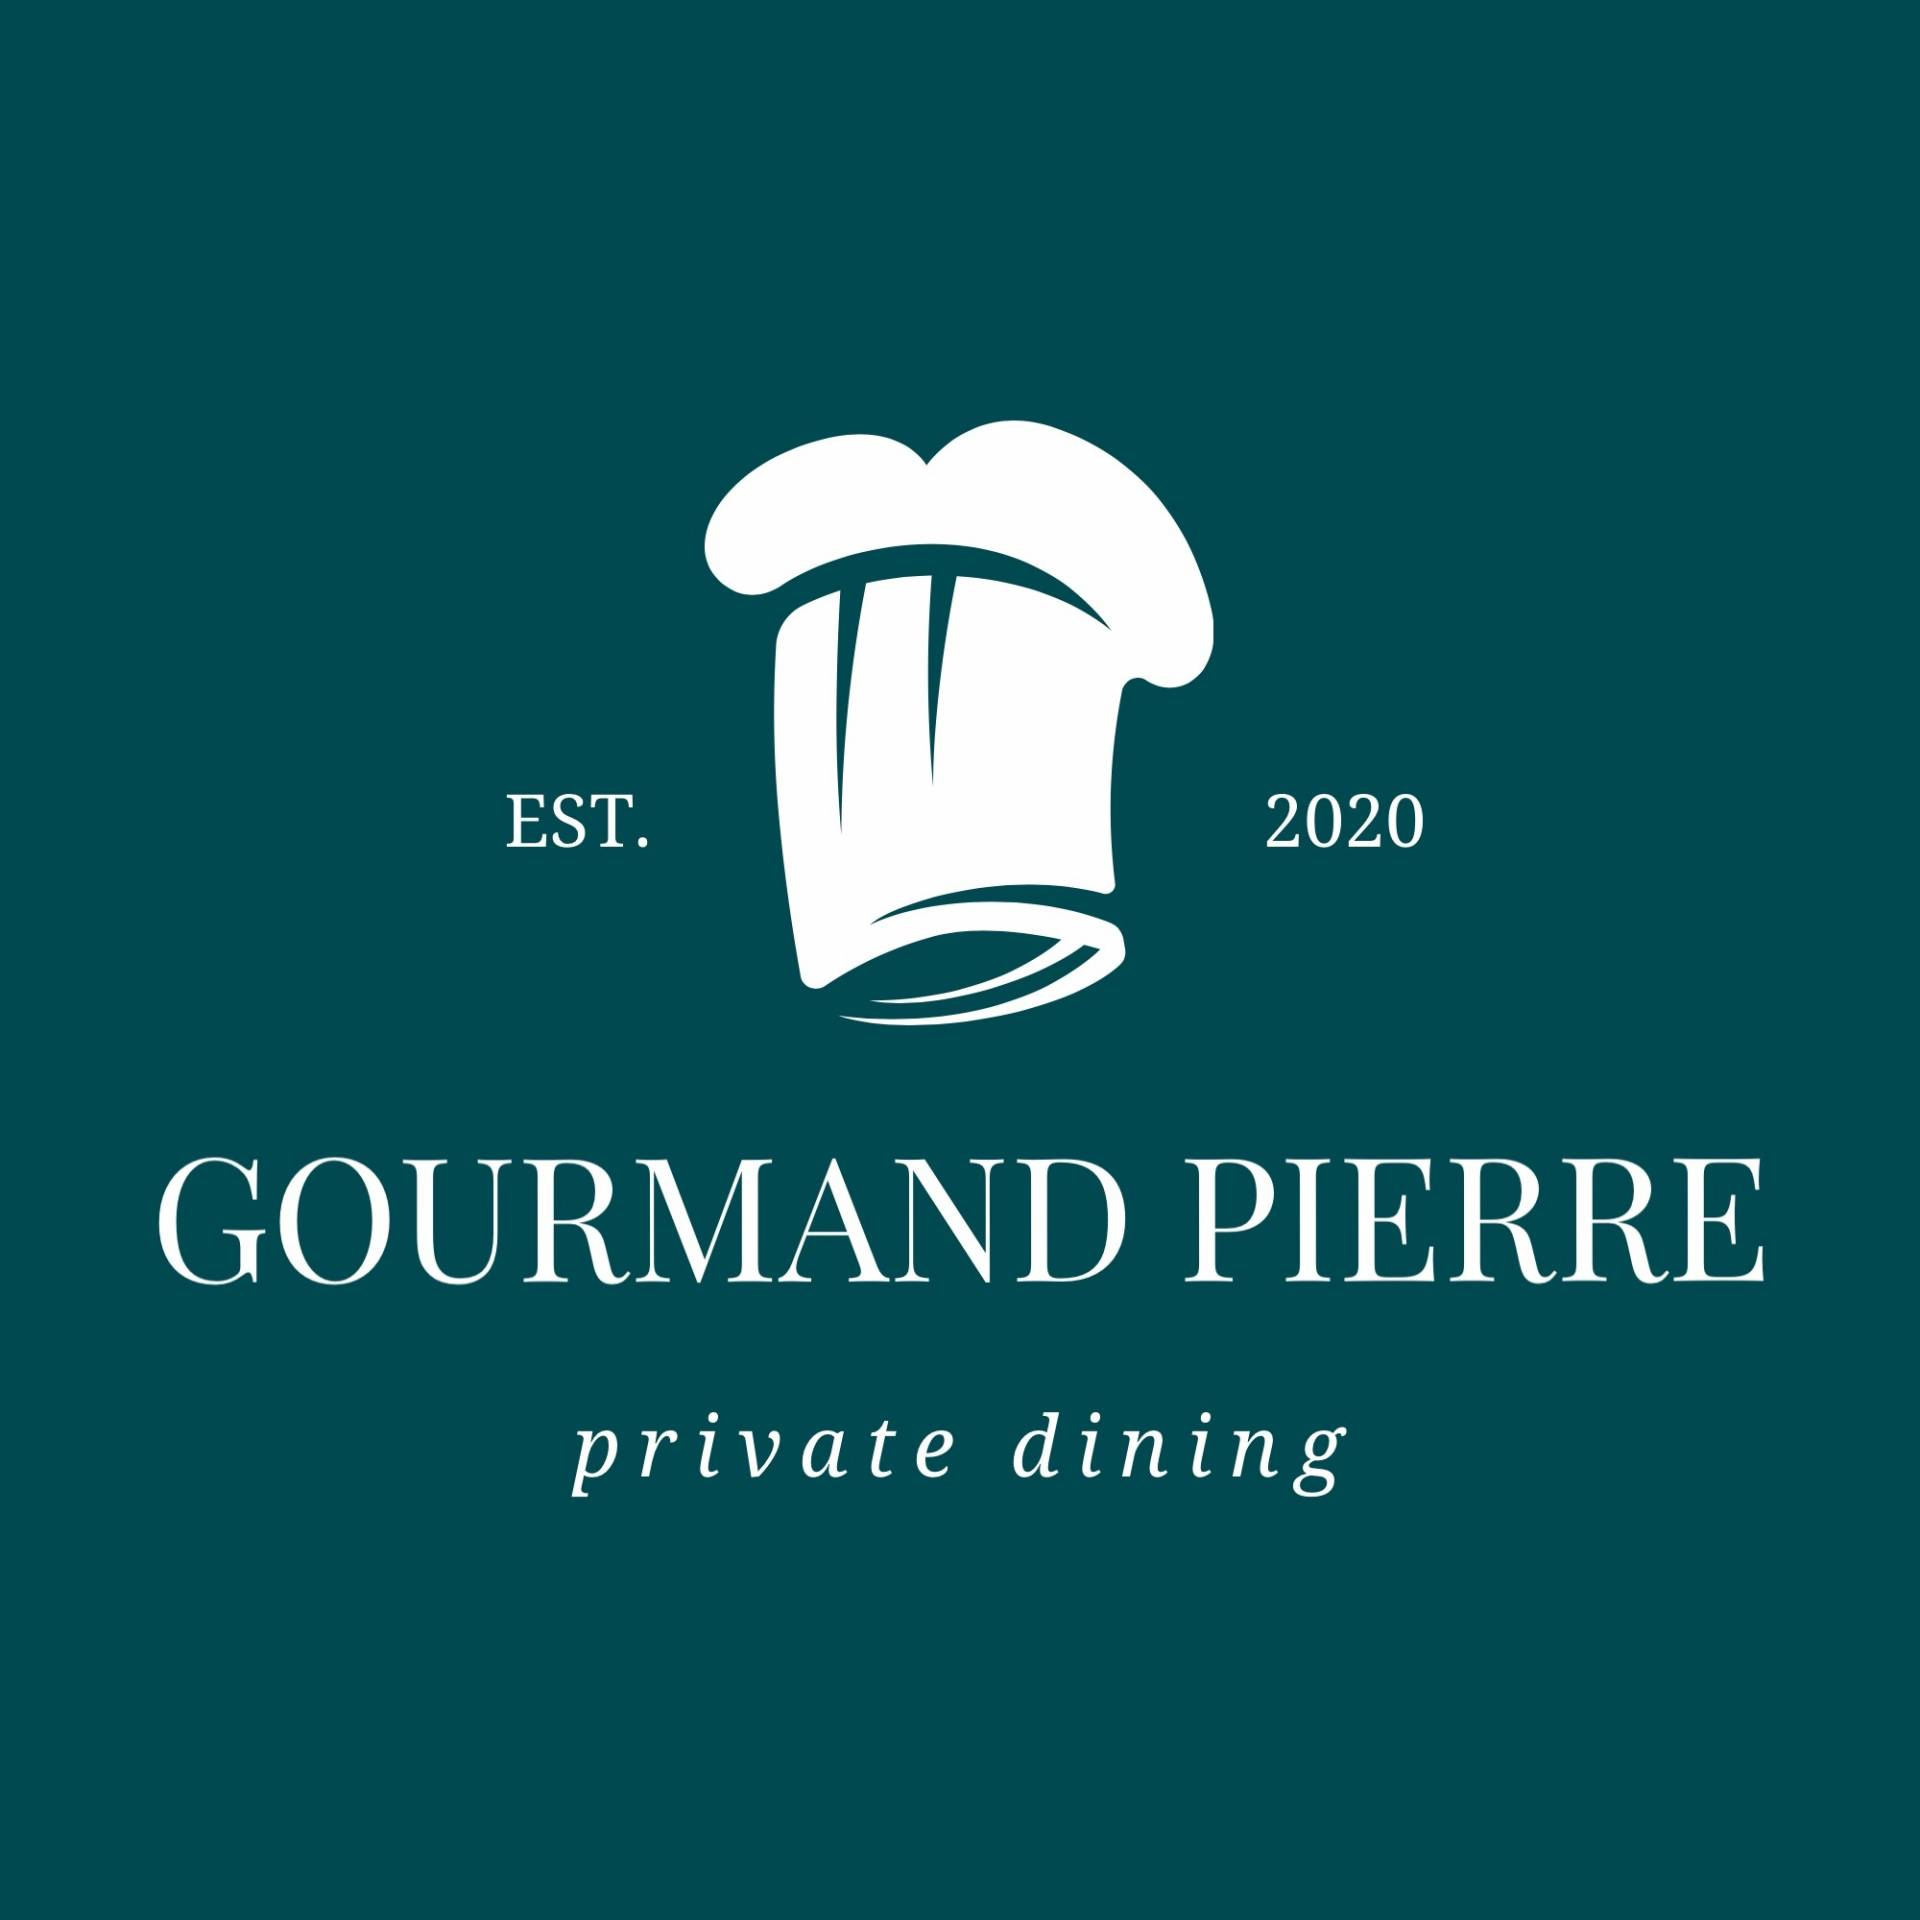 Photo from Pierre Gourmand